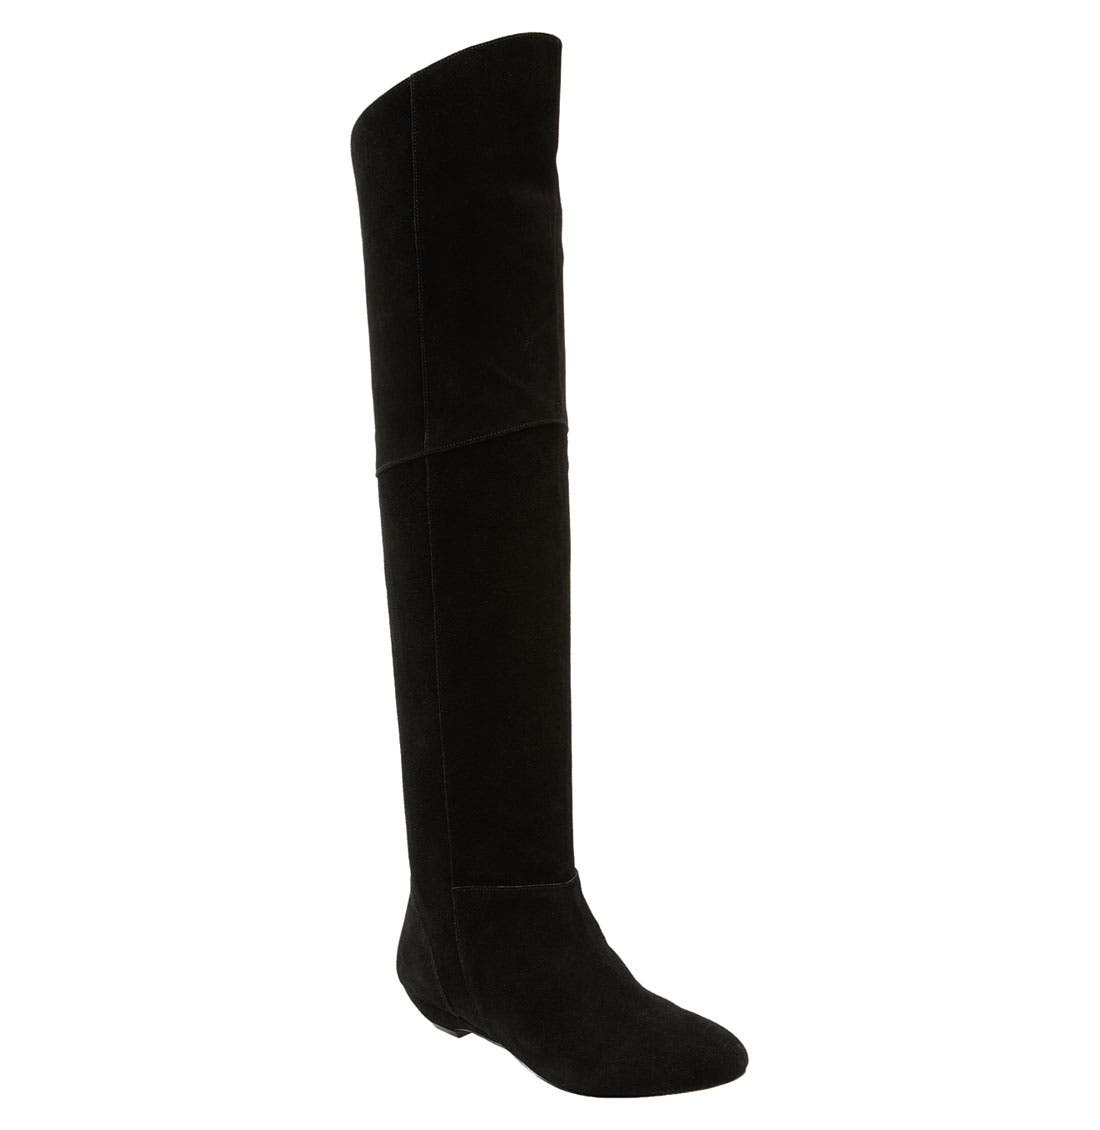 'Overrpas' Over the Knee Boot,                         Main,                         color, 006